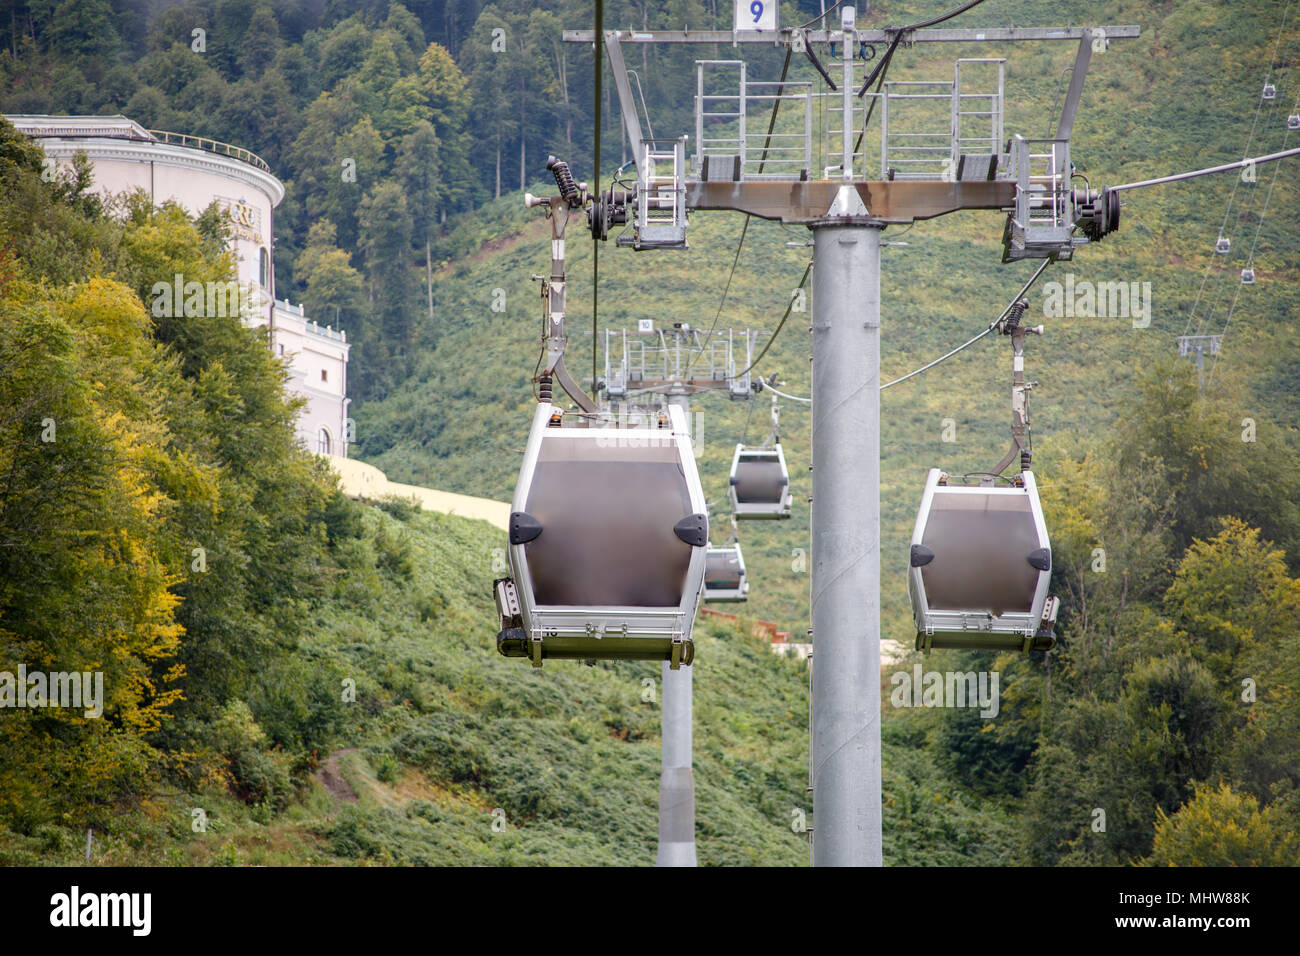 Photo of funicular in mountain slope - Stock Image